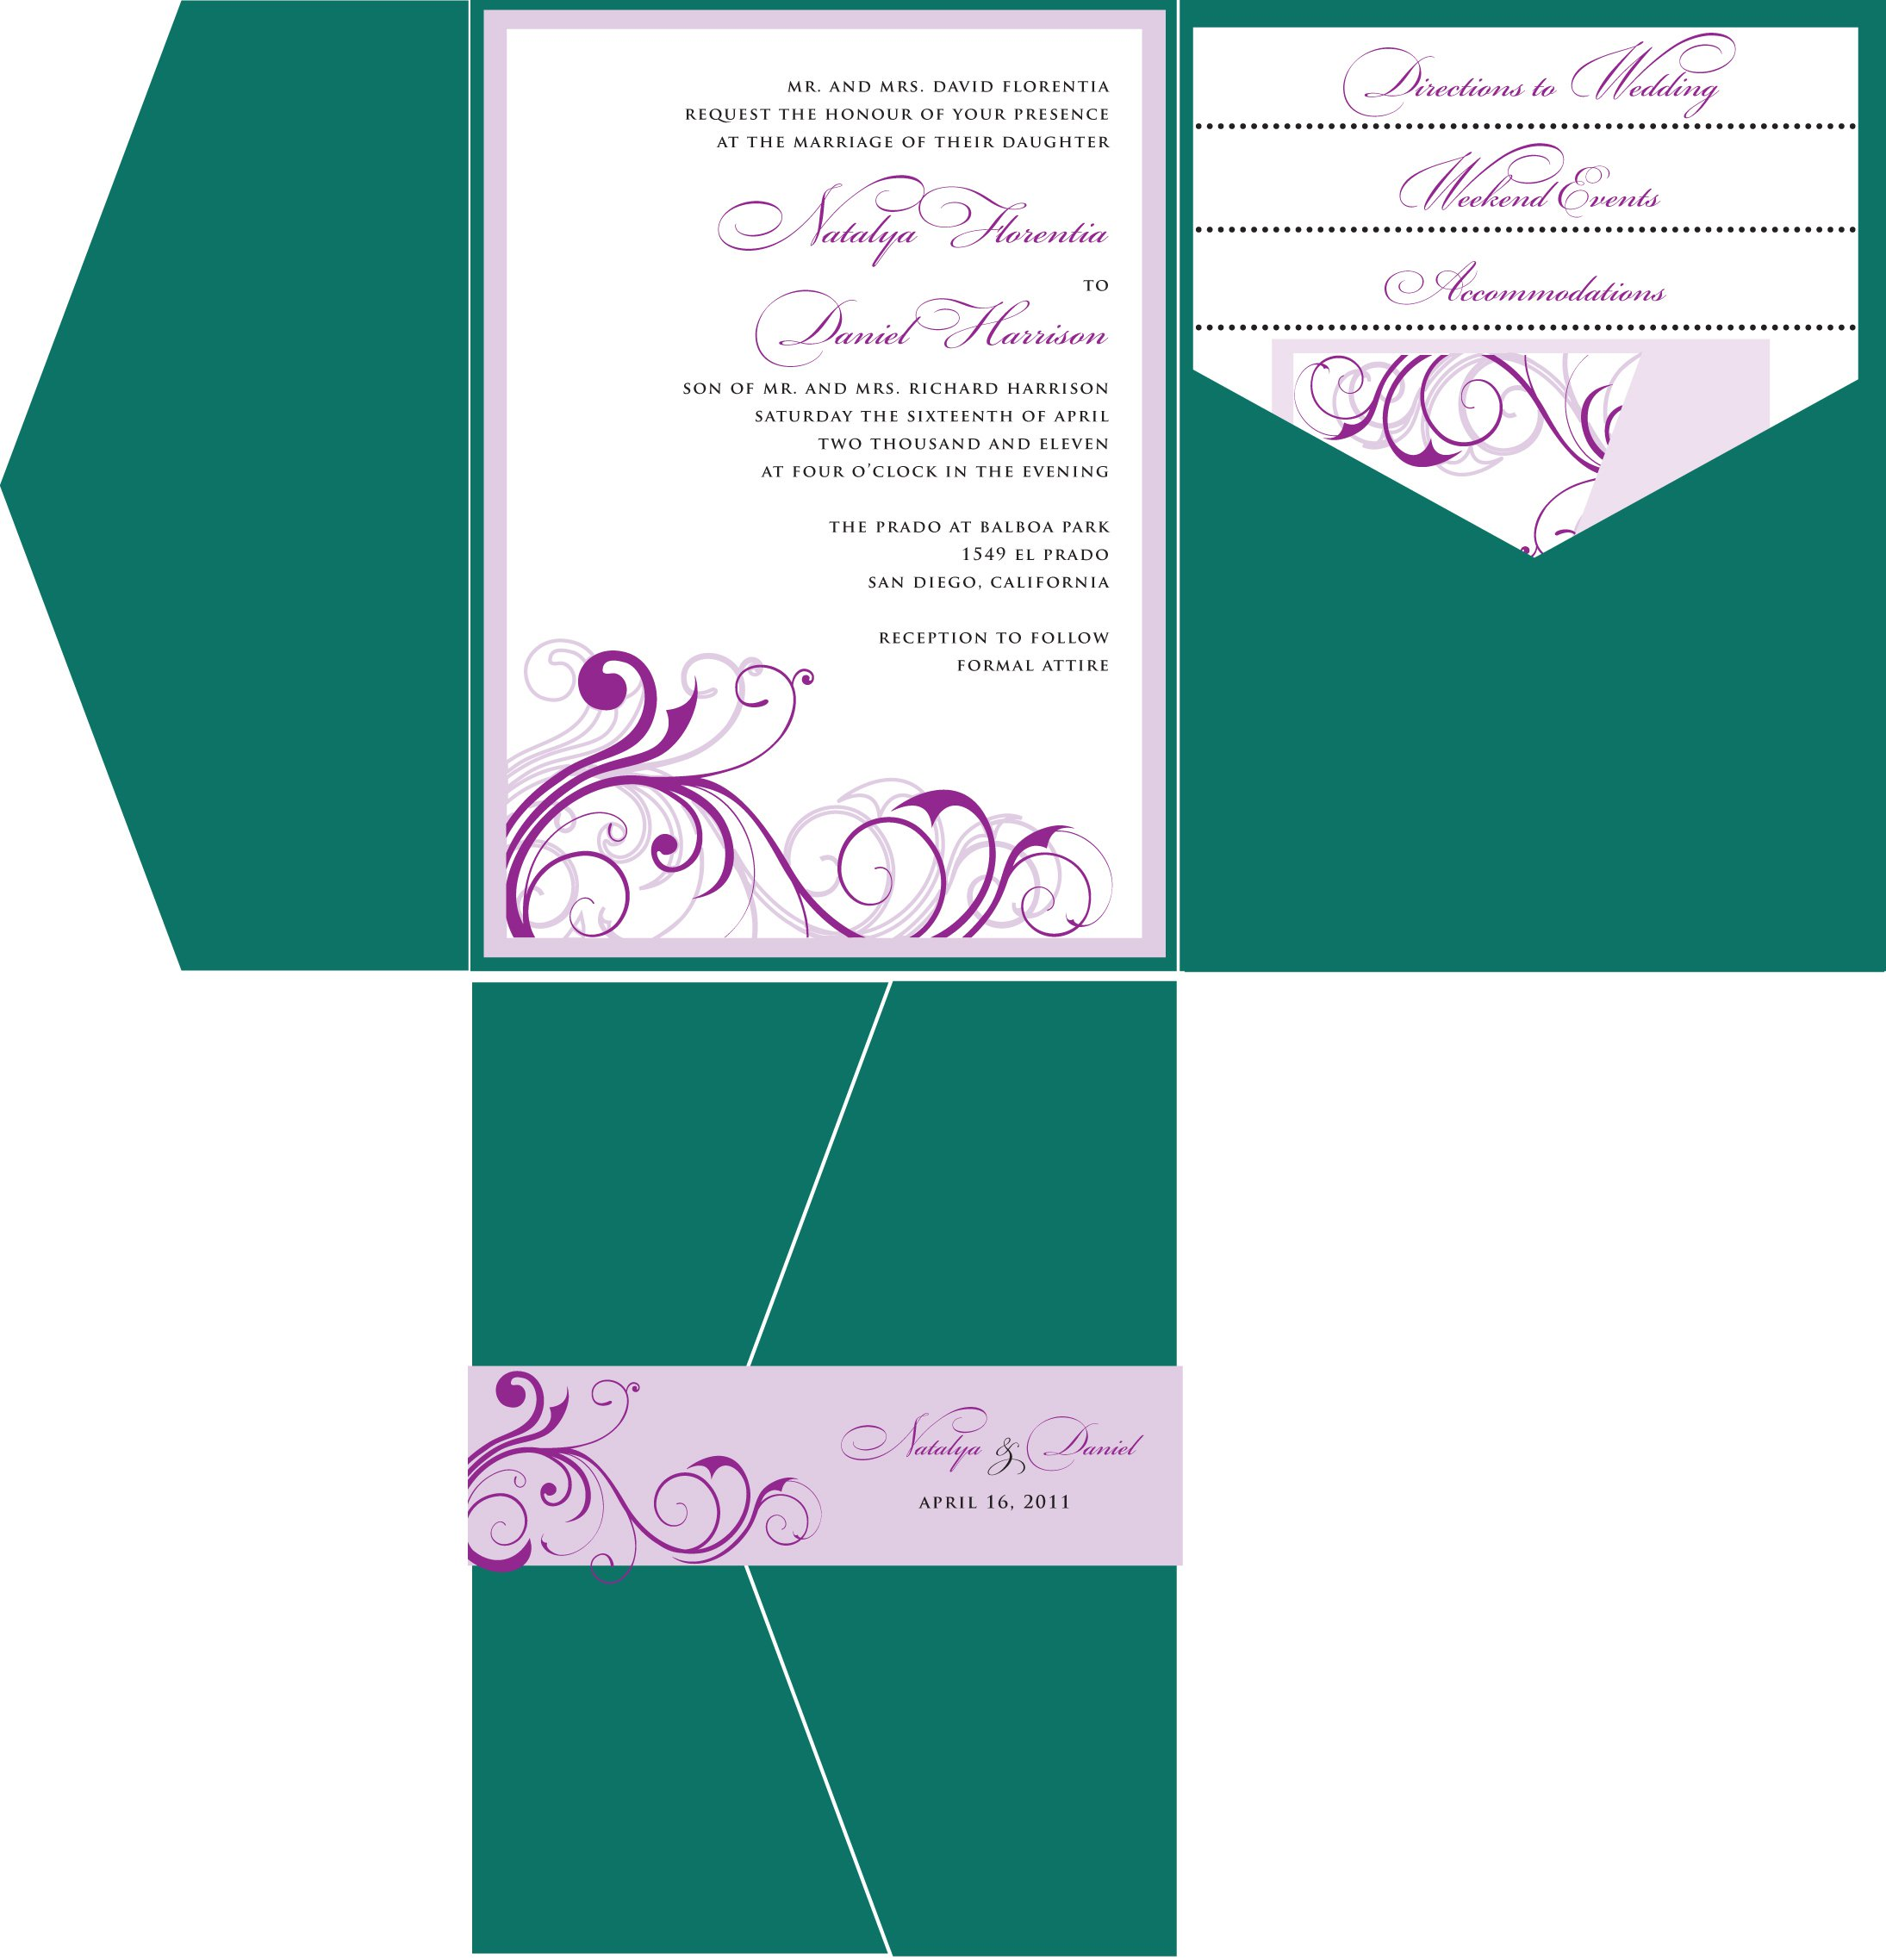 Wedding Invitation Templates – Homemade Wedding Invitation Templates